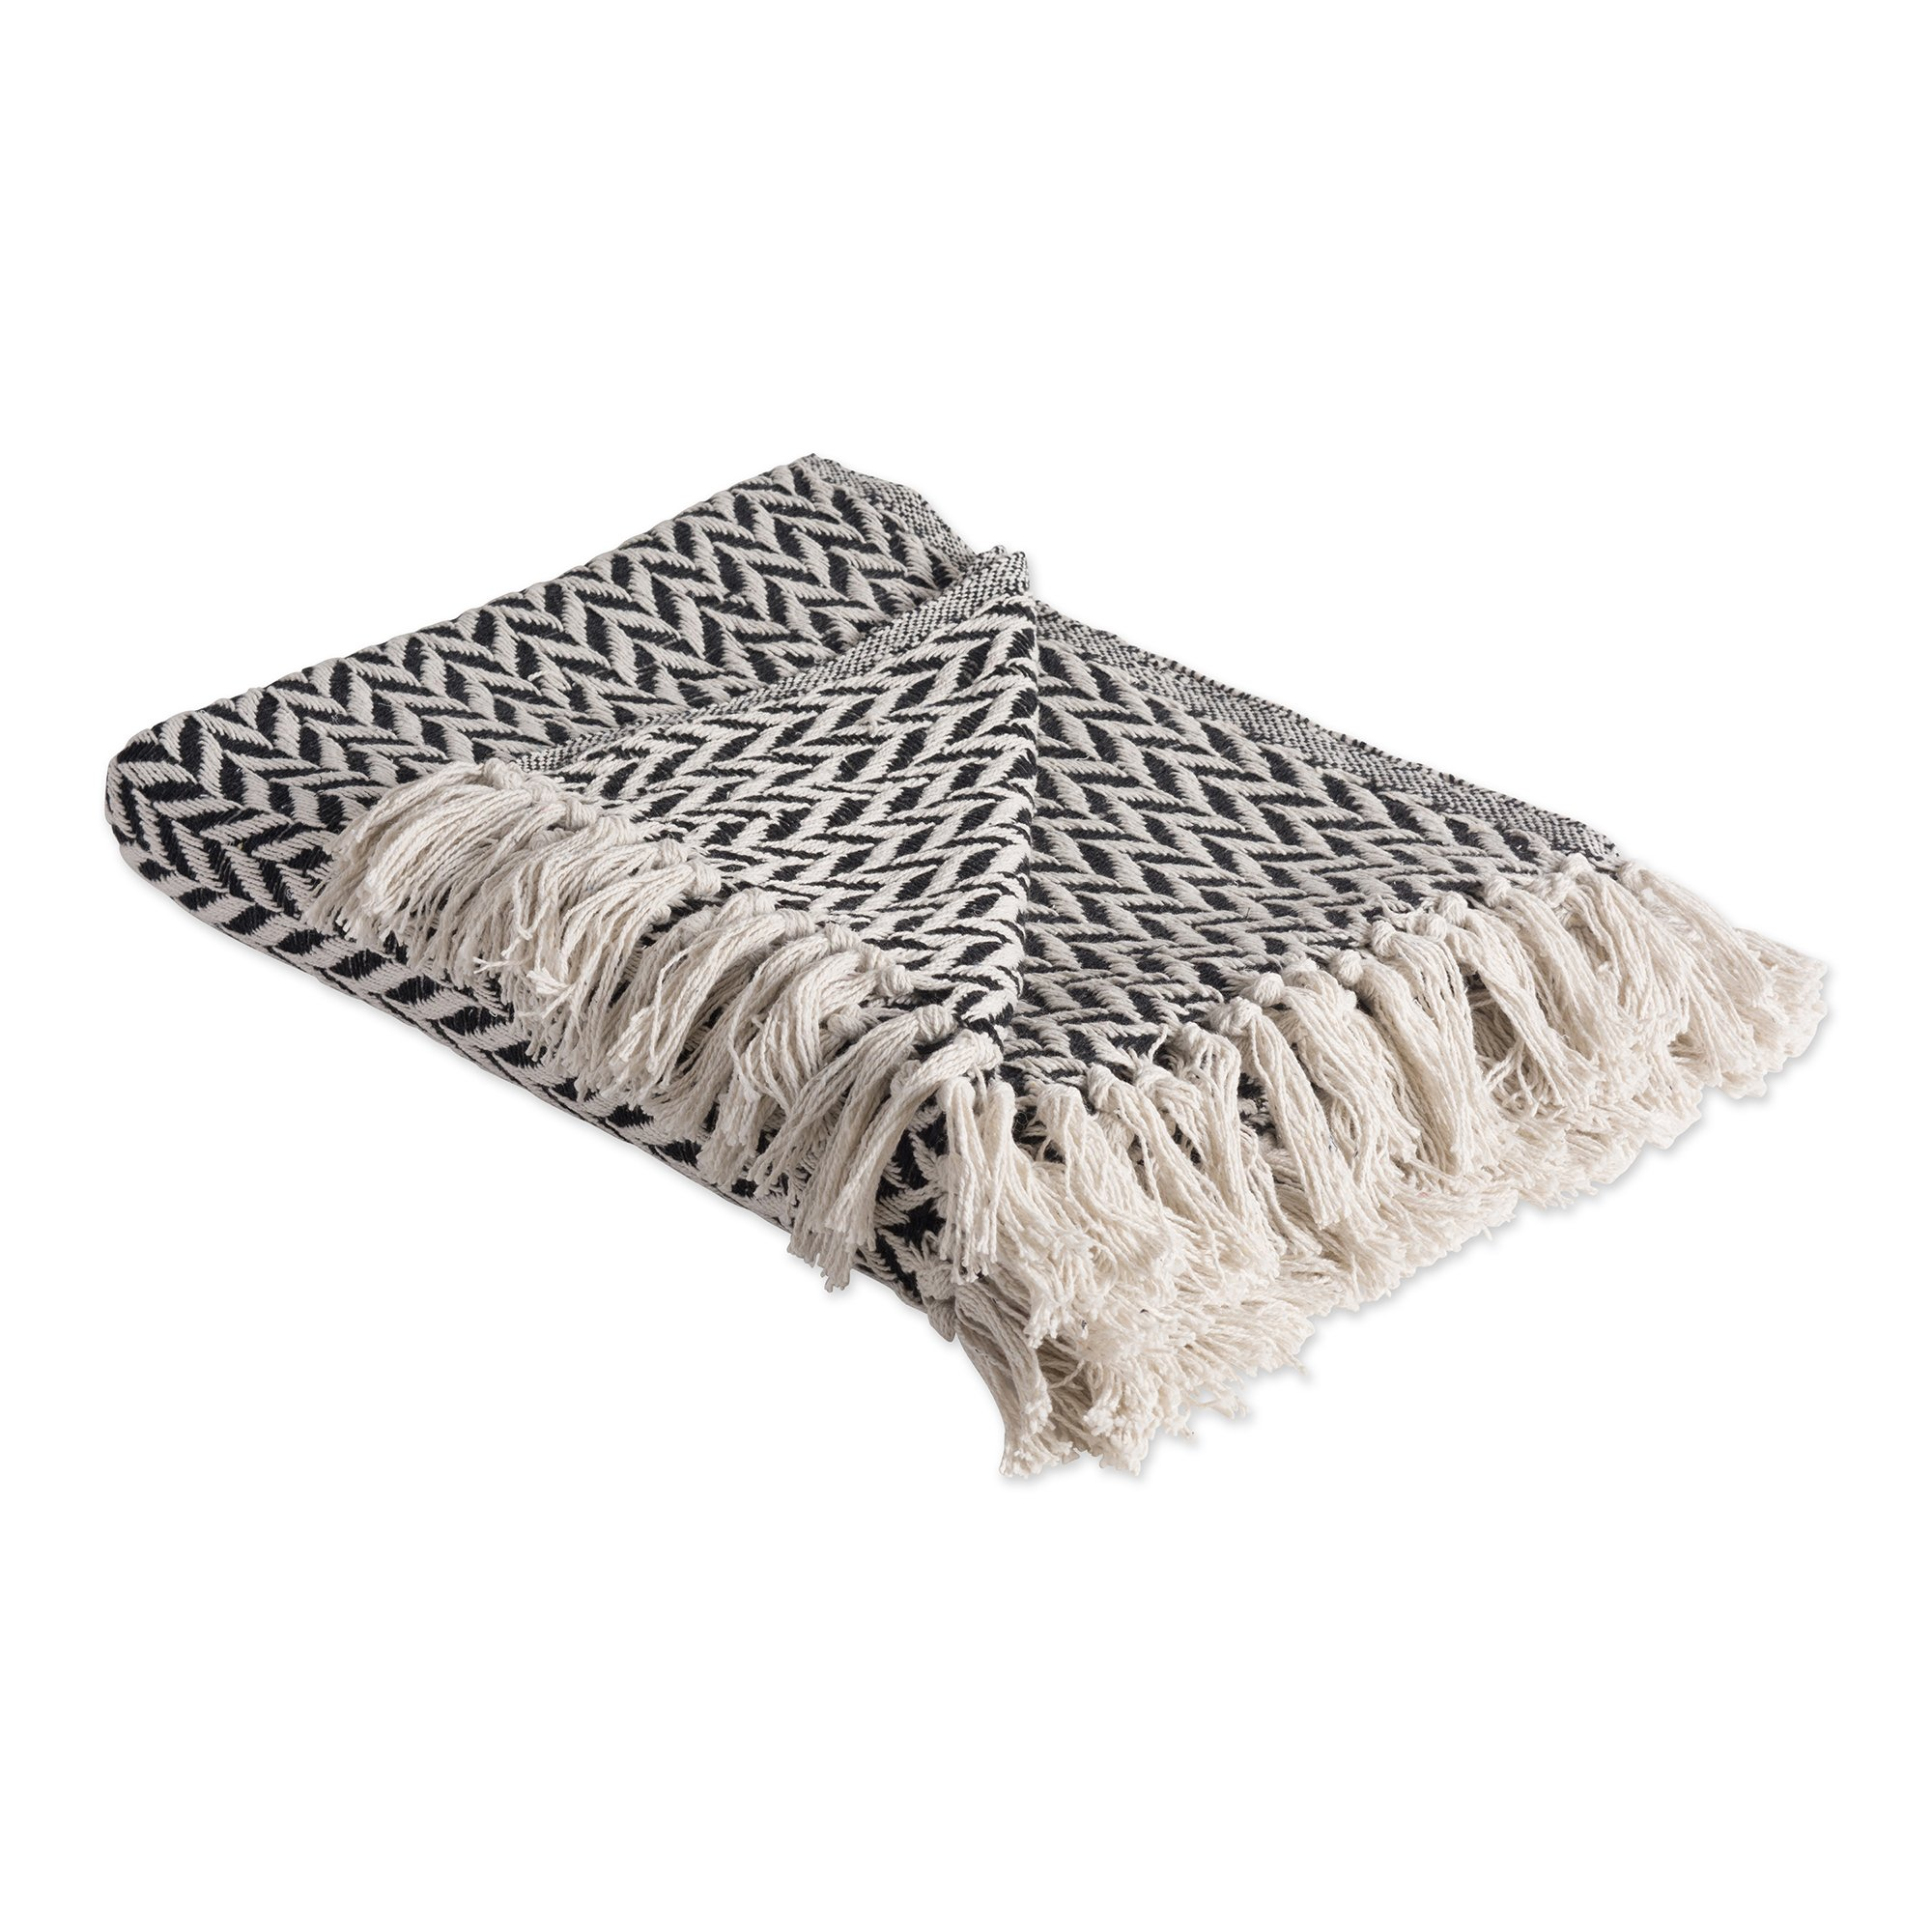 DII Rustic Farmhouse Cotton Zig-Zag Blanket Throw with Fringe For Chair, Couch, Picnic, Camping, Beach, & Everyday Use , 50 x 60'' - Black